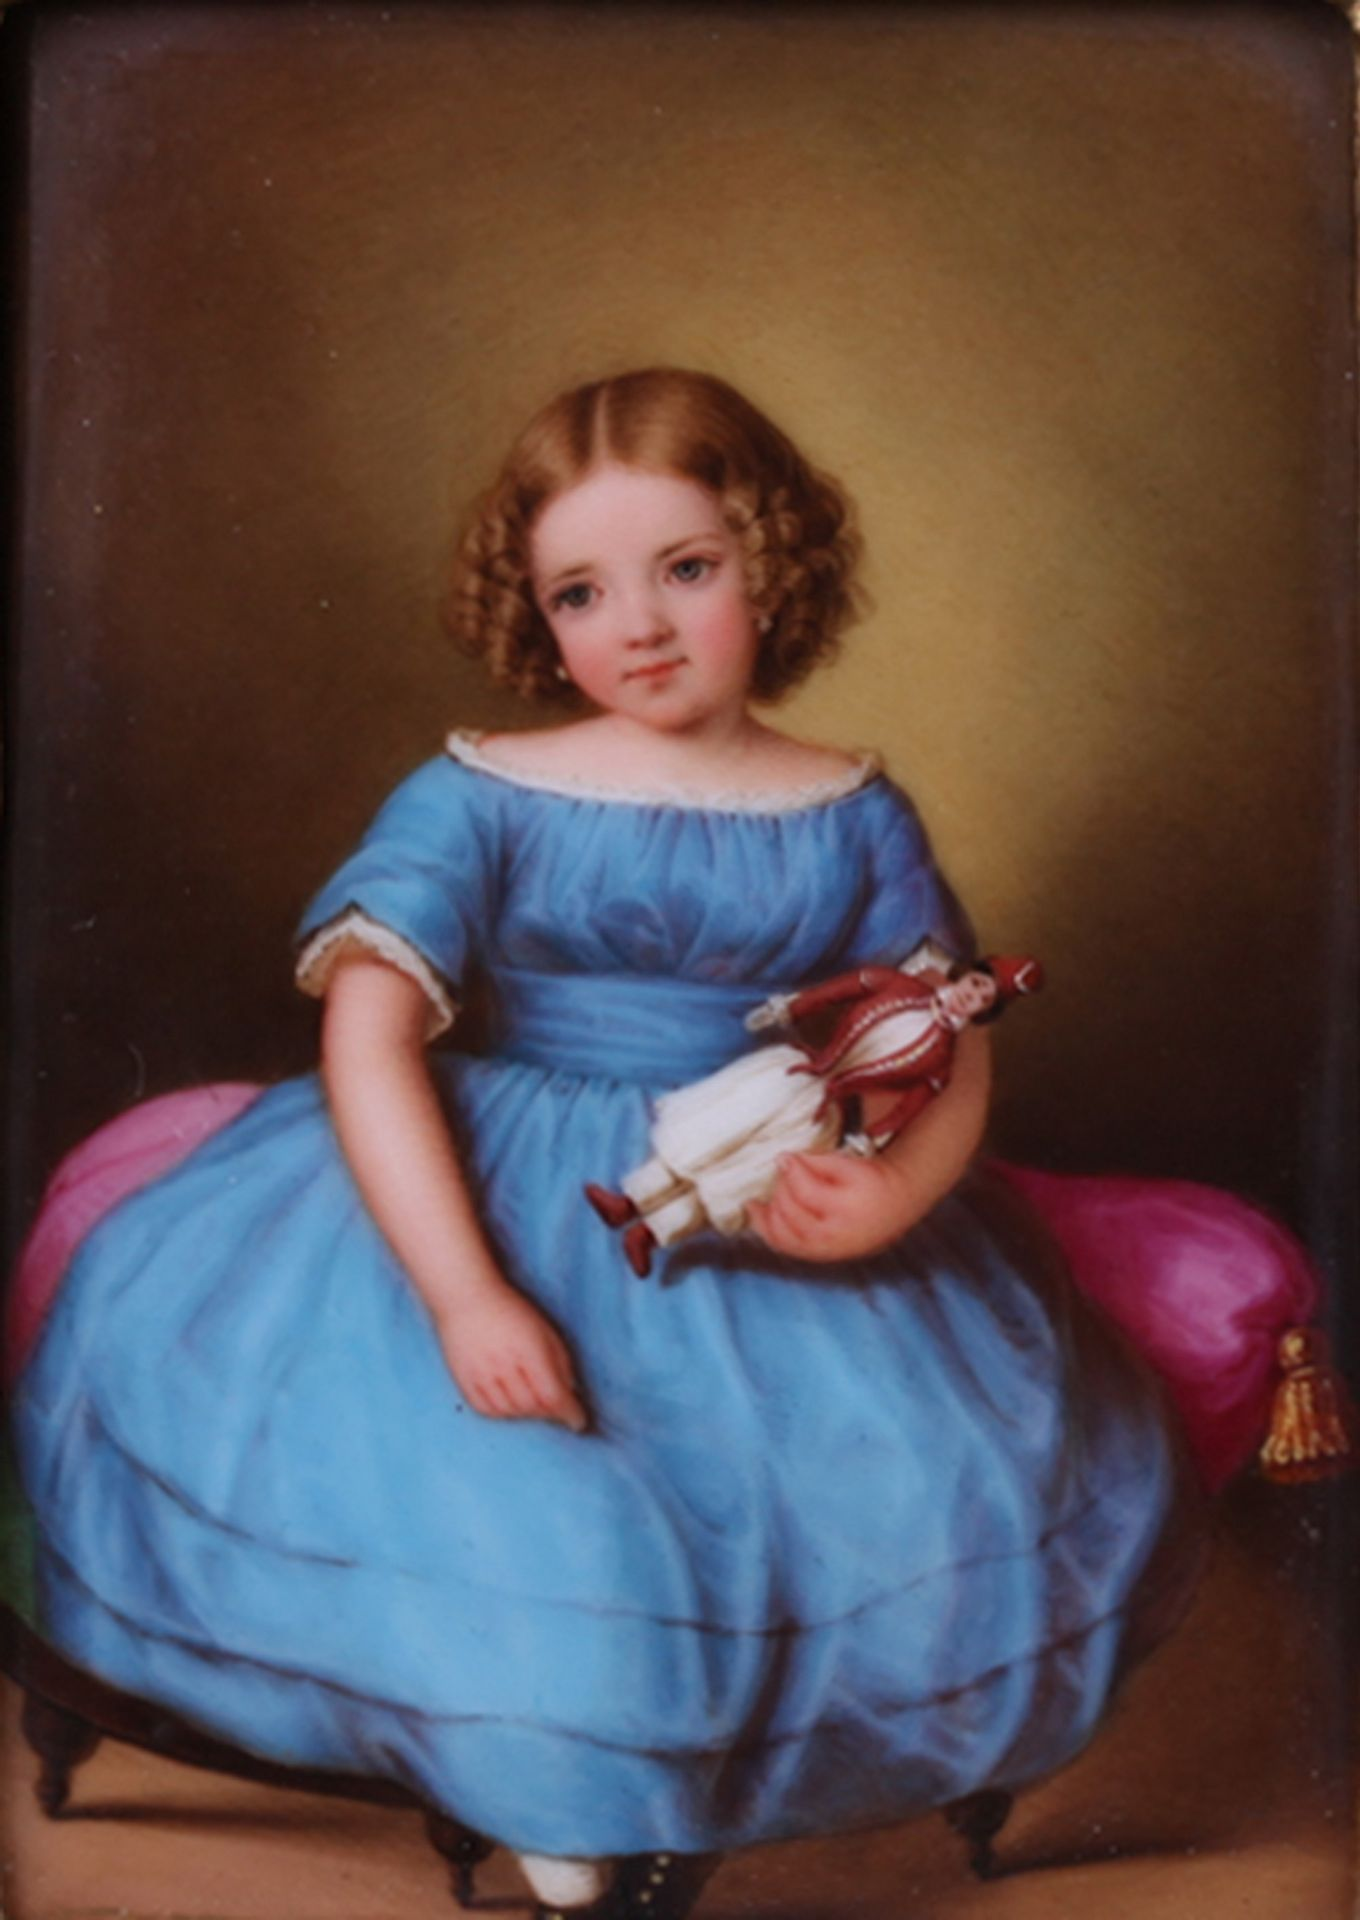 Hoffmann, E. Girl with a doll. Porcelain painting. 1853. 10,7x7,5 cm.<br>Framed. Artist's sign and d